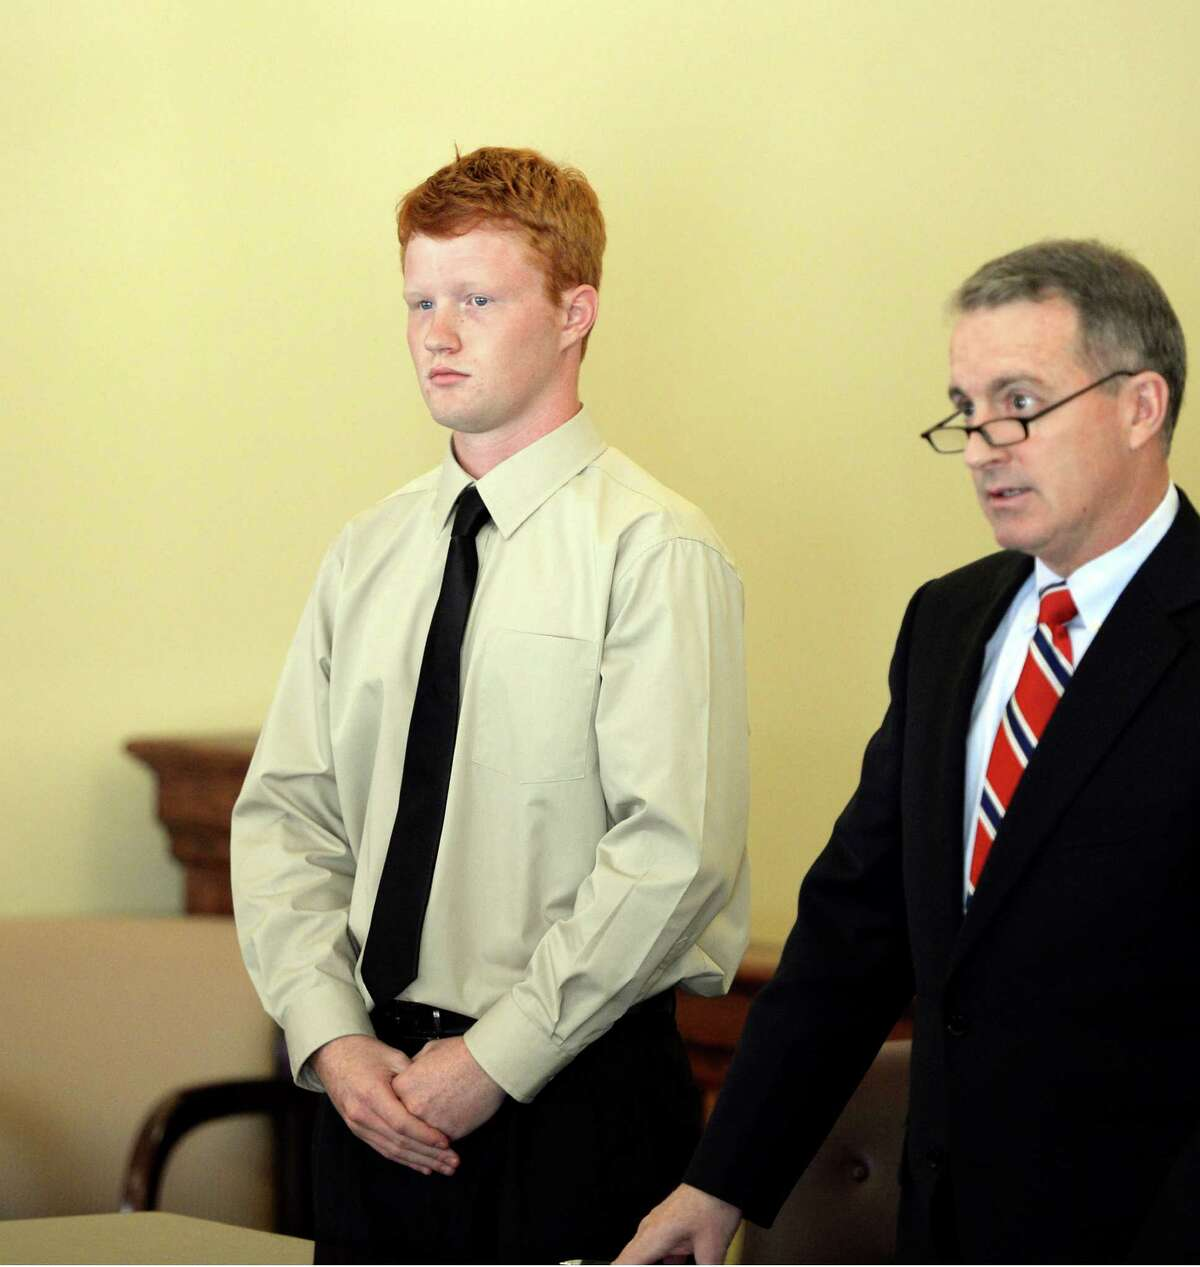 Brendan Hoffman stands in Judge Debra Young's Rensselaer County Court with his attorney Peter J. Moschetti Jr. for his arraignment on charges alleging his involvement in a DWI accident that killed his best friend Nov. 6, 2013, in Troy, N.Y. (Skip Dickstein/Times Union archive)